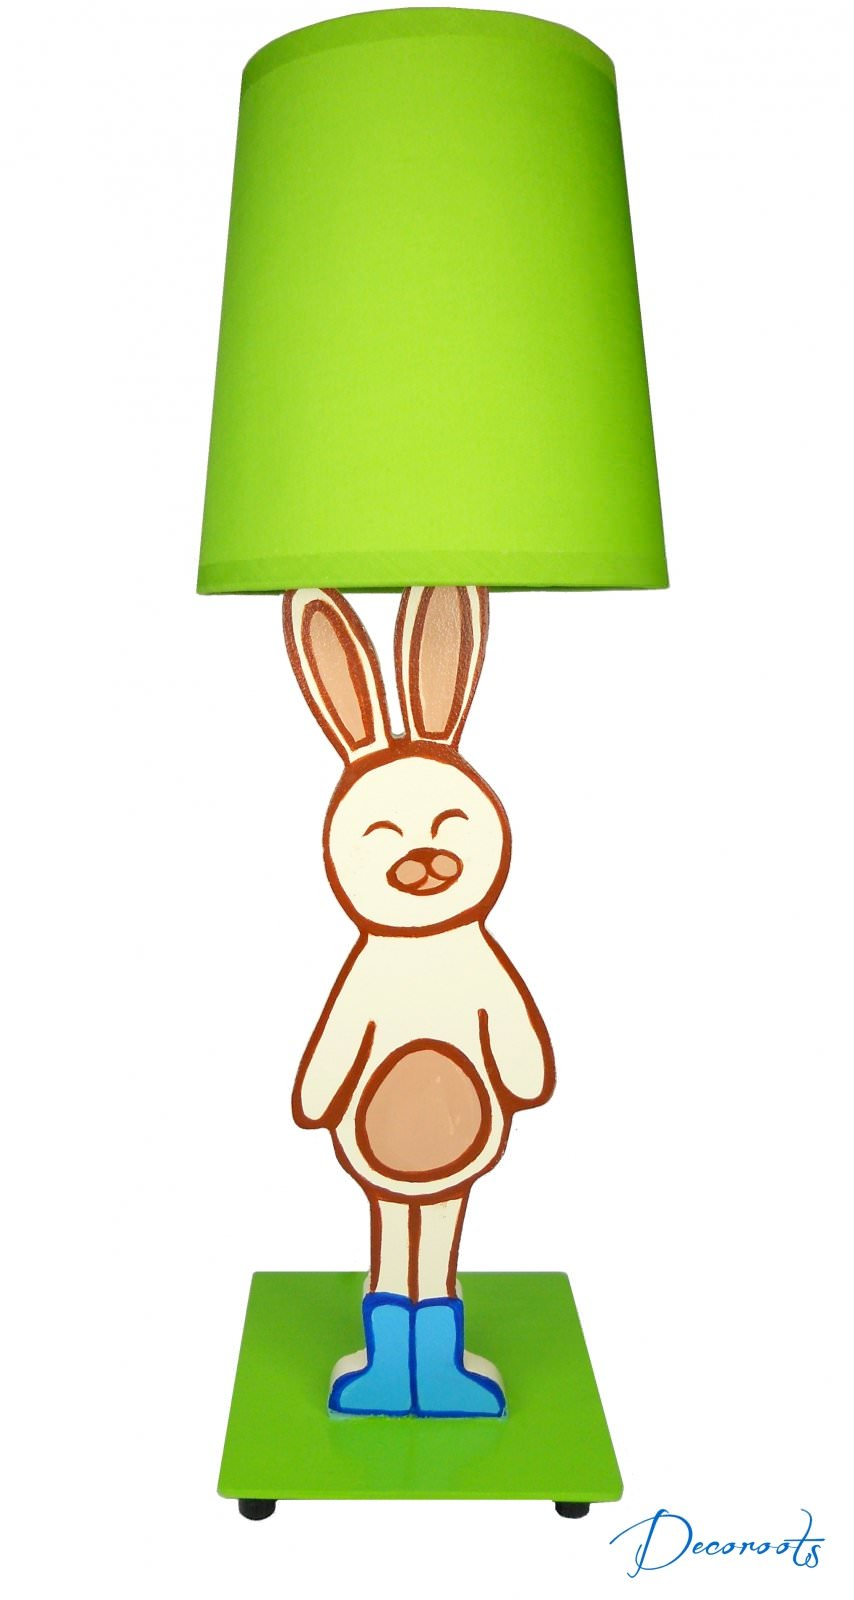 lampe de chevet lapin gar on existe en bleu enfant. Black Bedroom Furniture Sets. Home Design Ideas